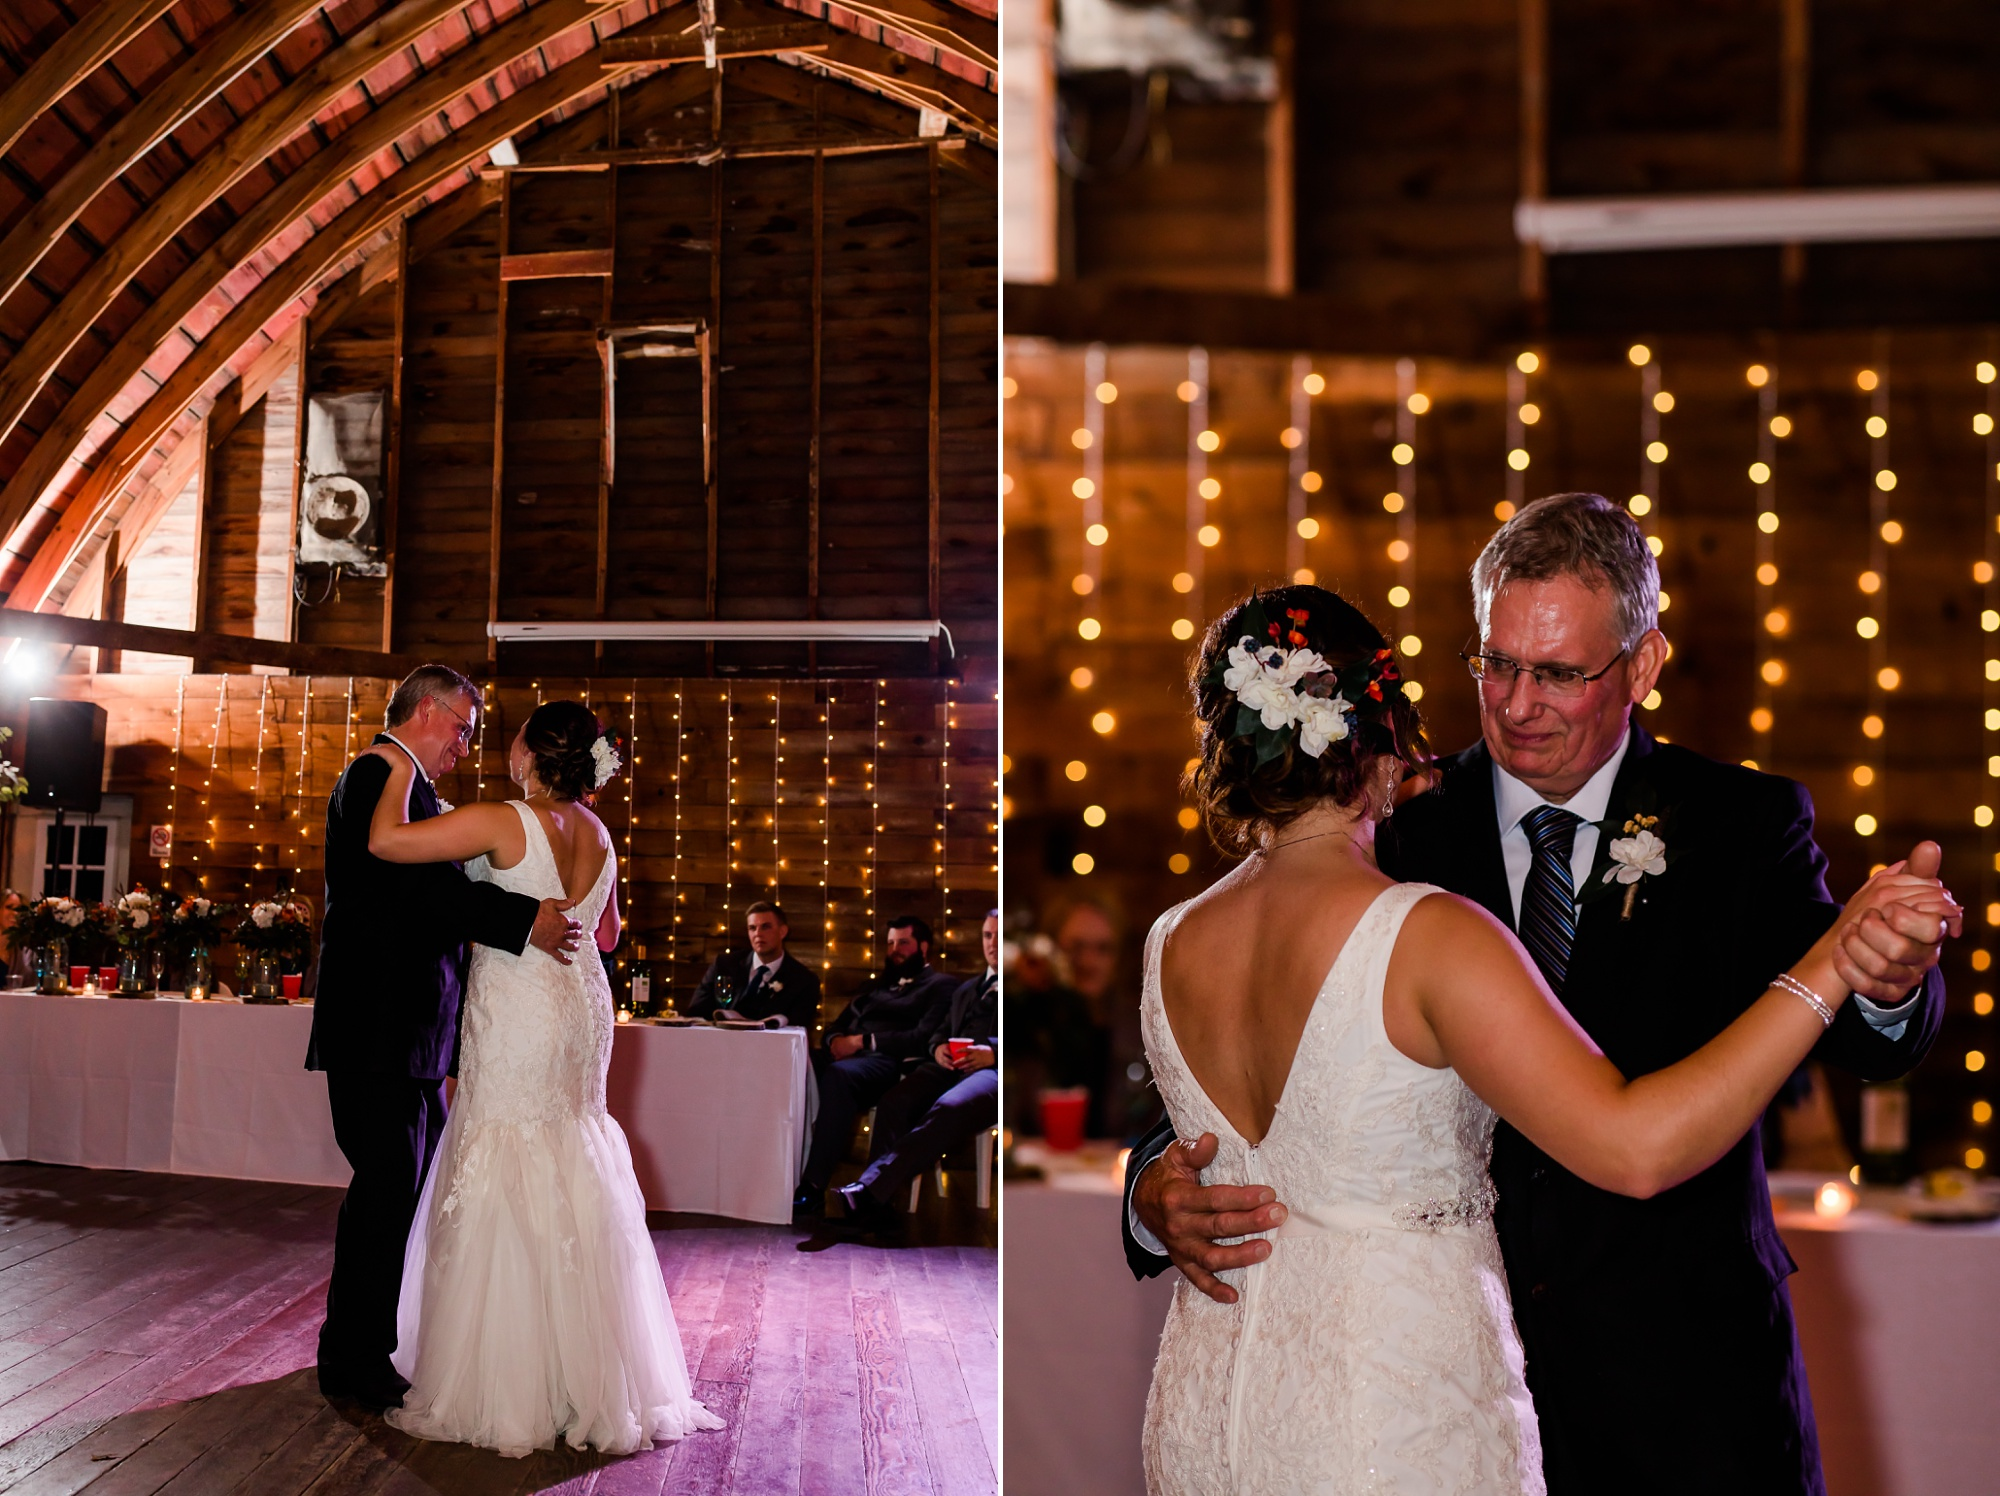 Amber Langerud Photography_Moohread, Outdoor, Barn Wedding at A Friends House_7155.jpg